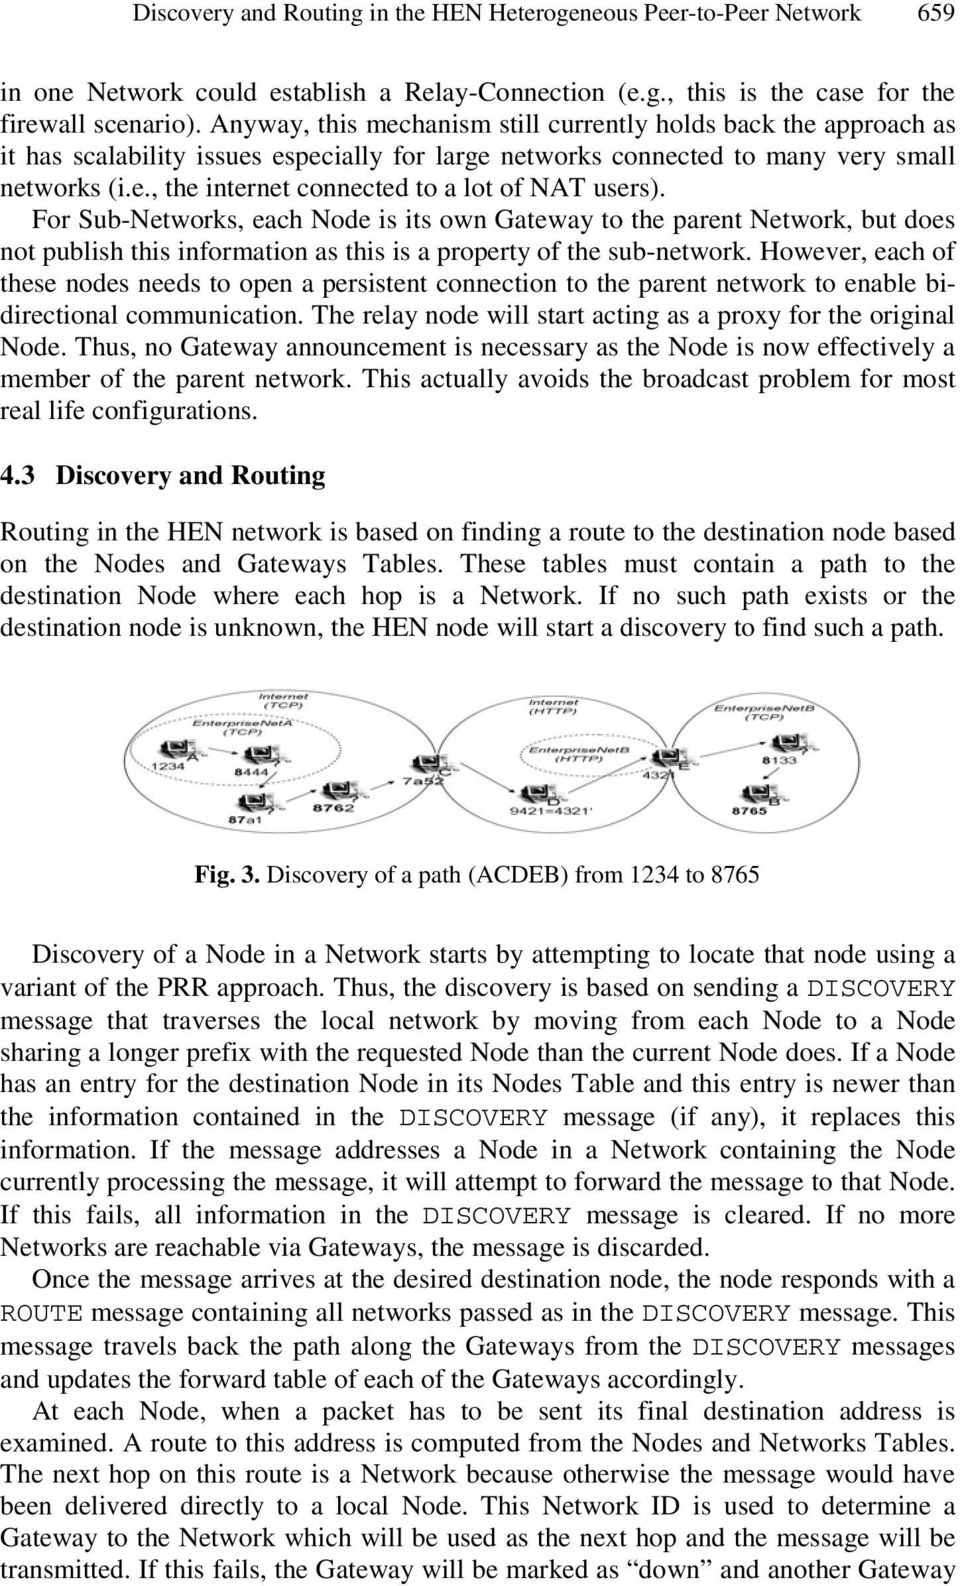 For Sub-Networks, each Node is its own Gateway to the parent Network, but does not publish this information as this is a property of the sub-network.